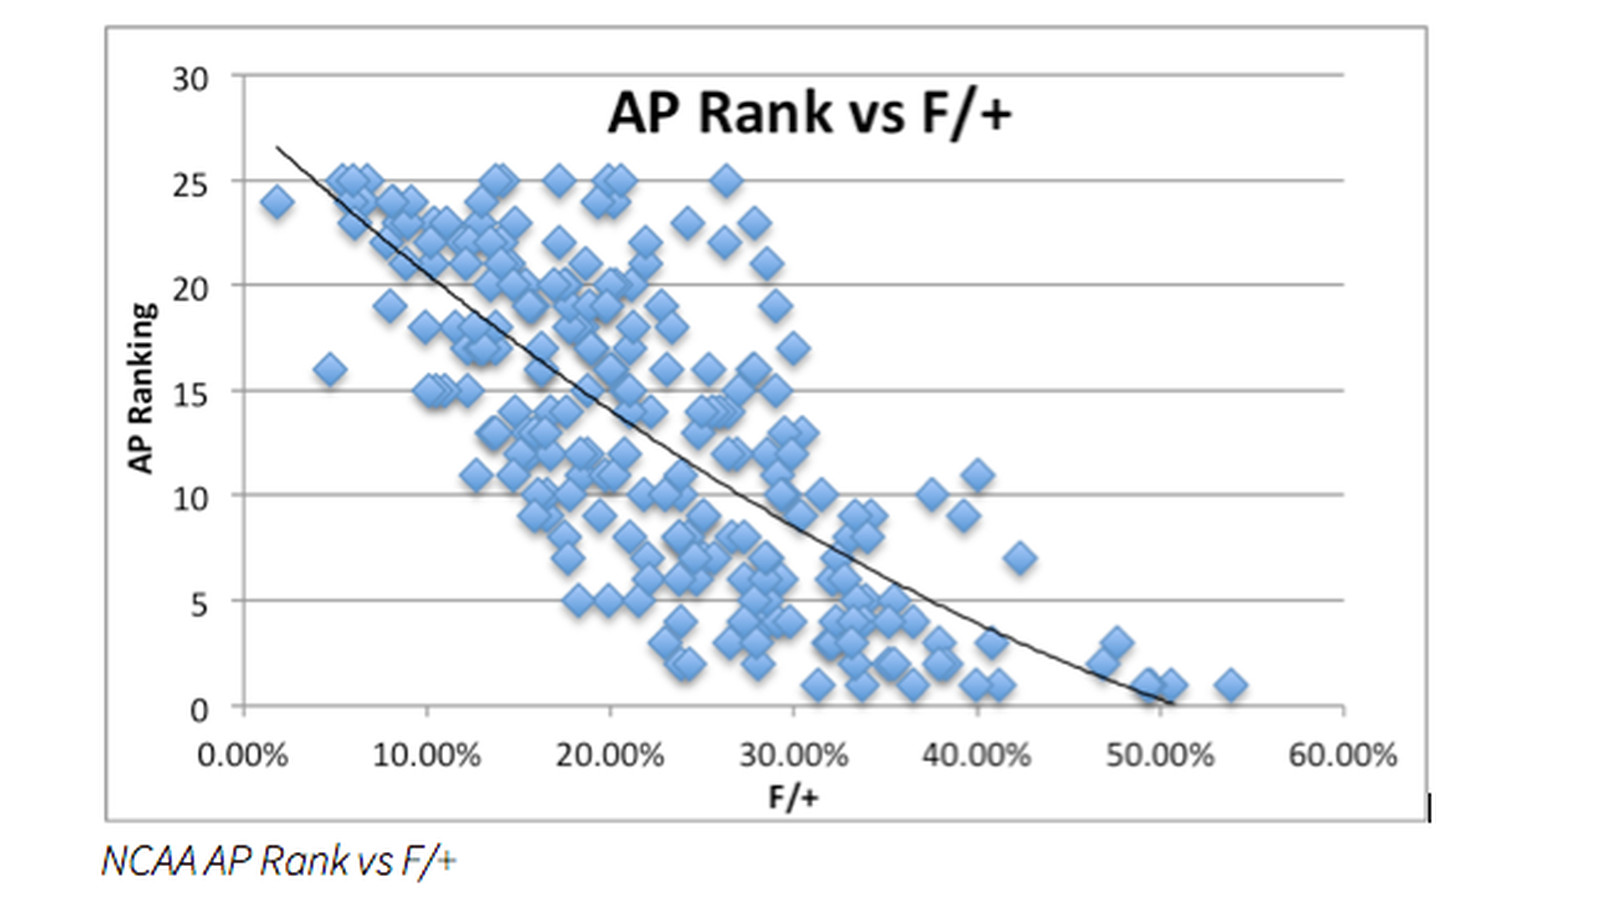 Chart suggests college football polls tend to be biased against the ACC